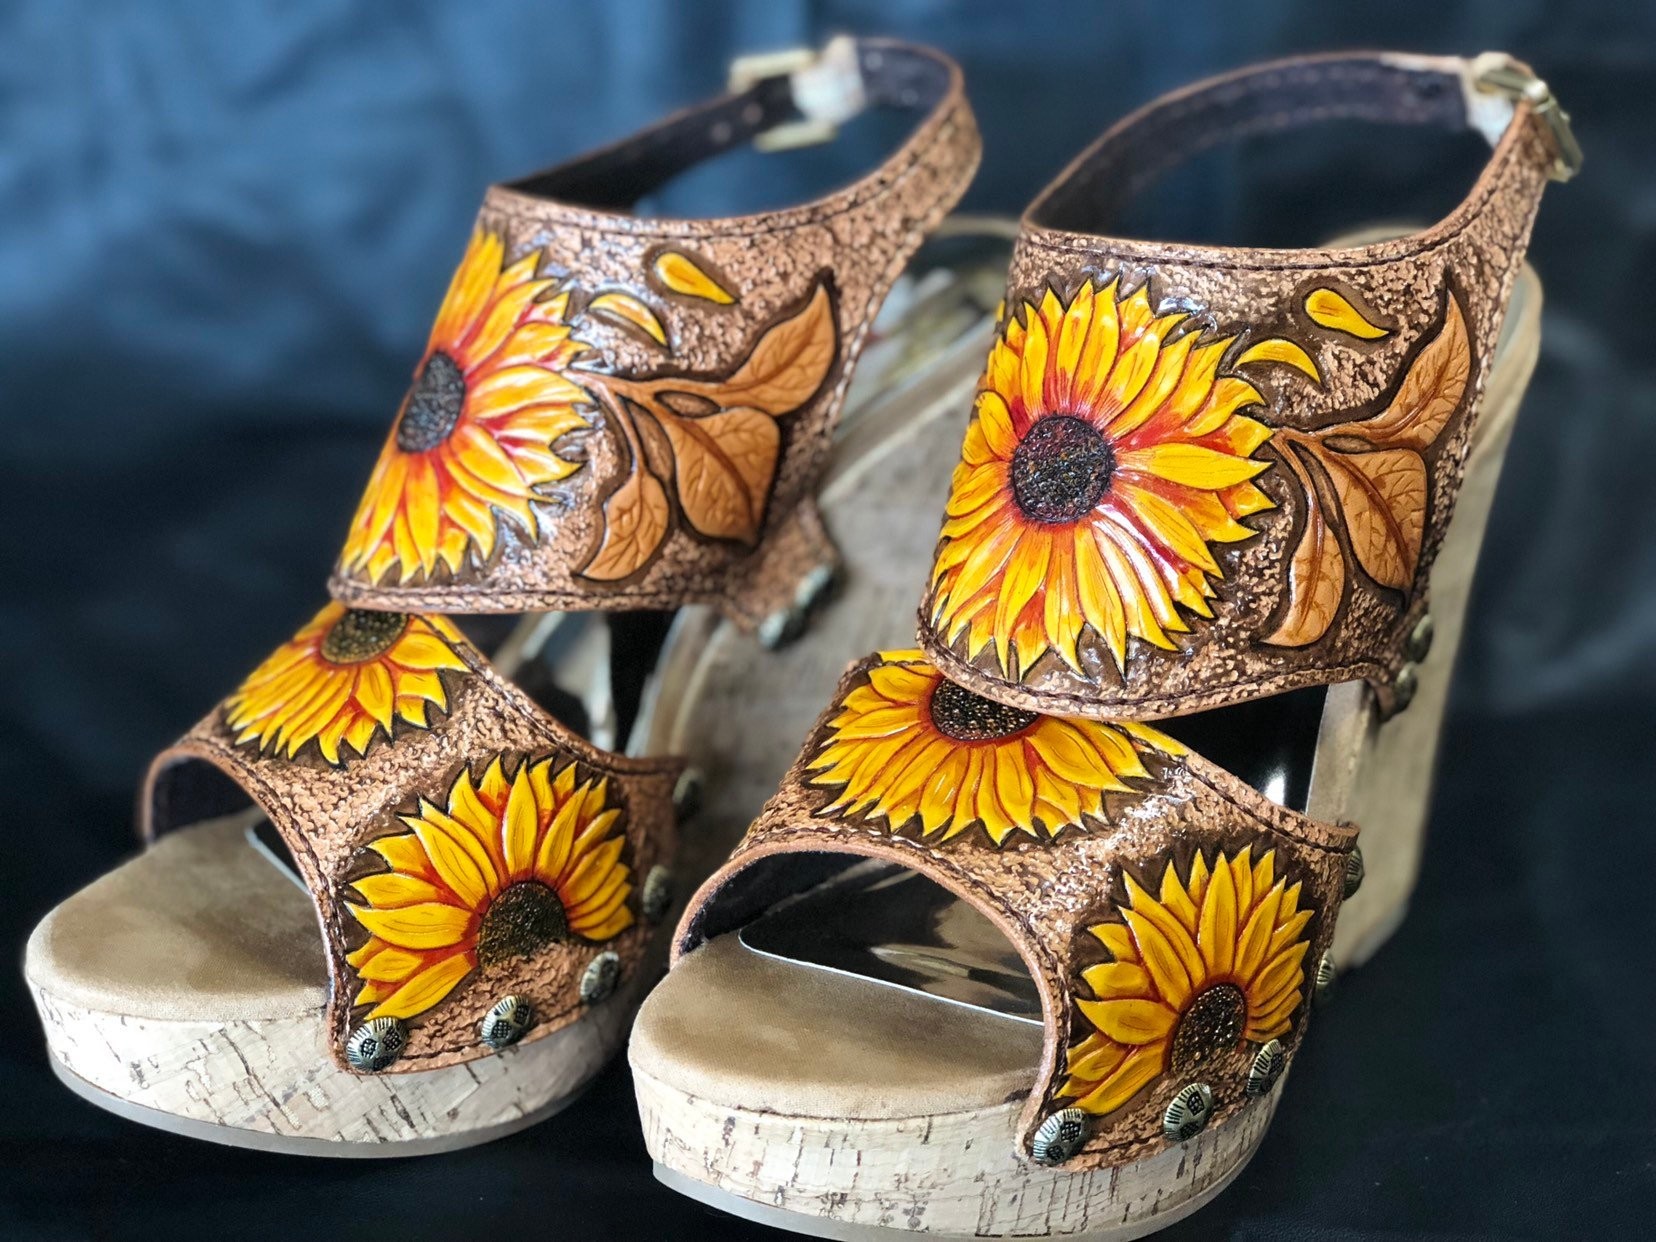 Tooled leather can also be painted or coloured in, like these one of a kind tooled leather  sunflower platform shoes